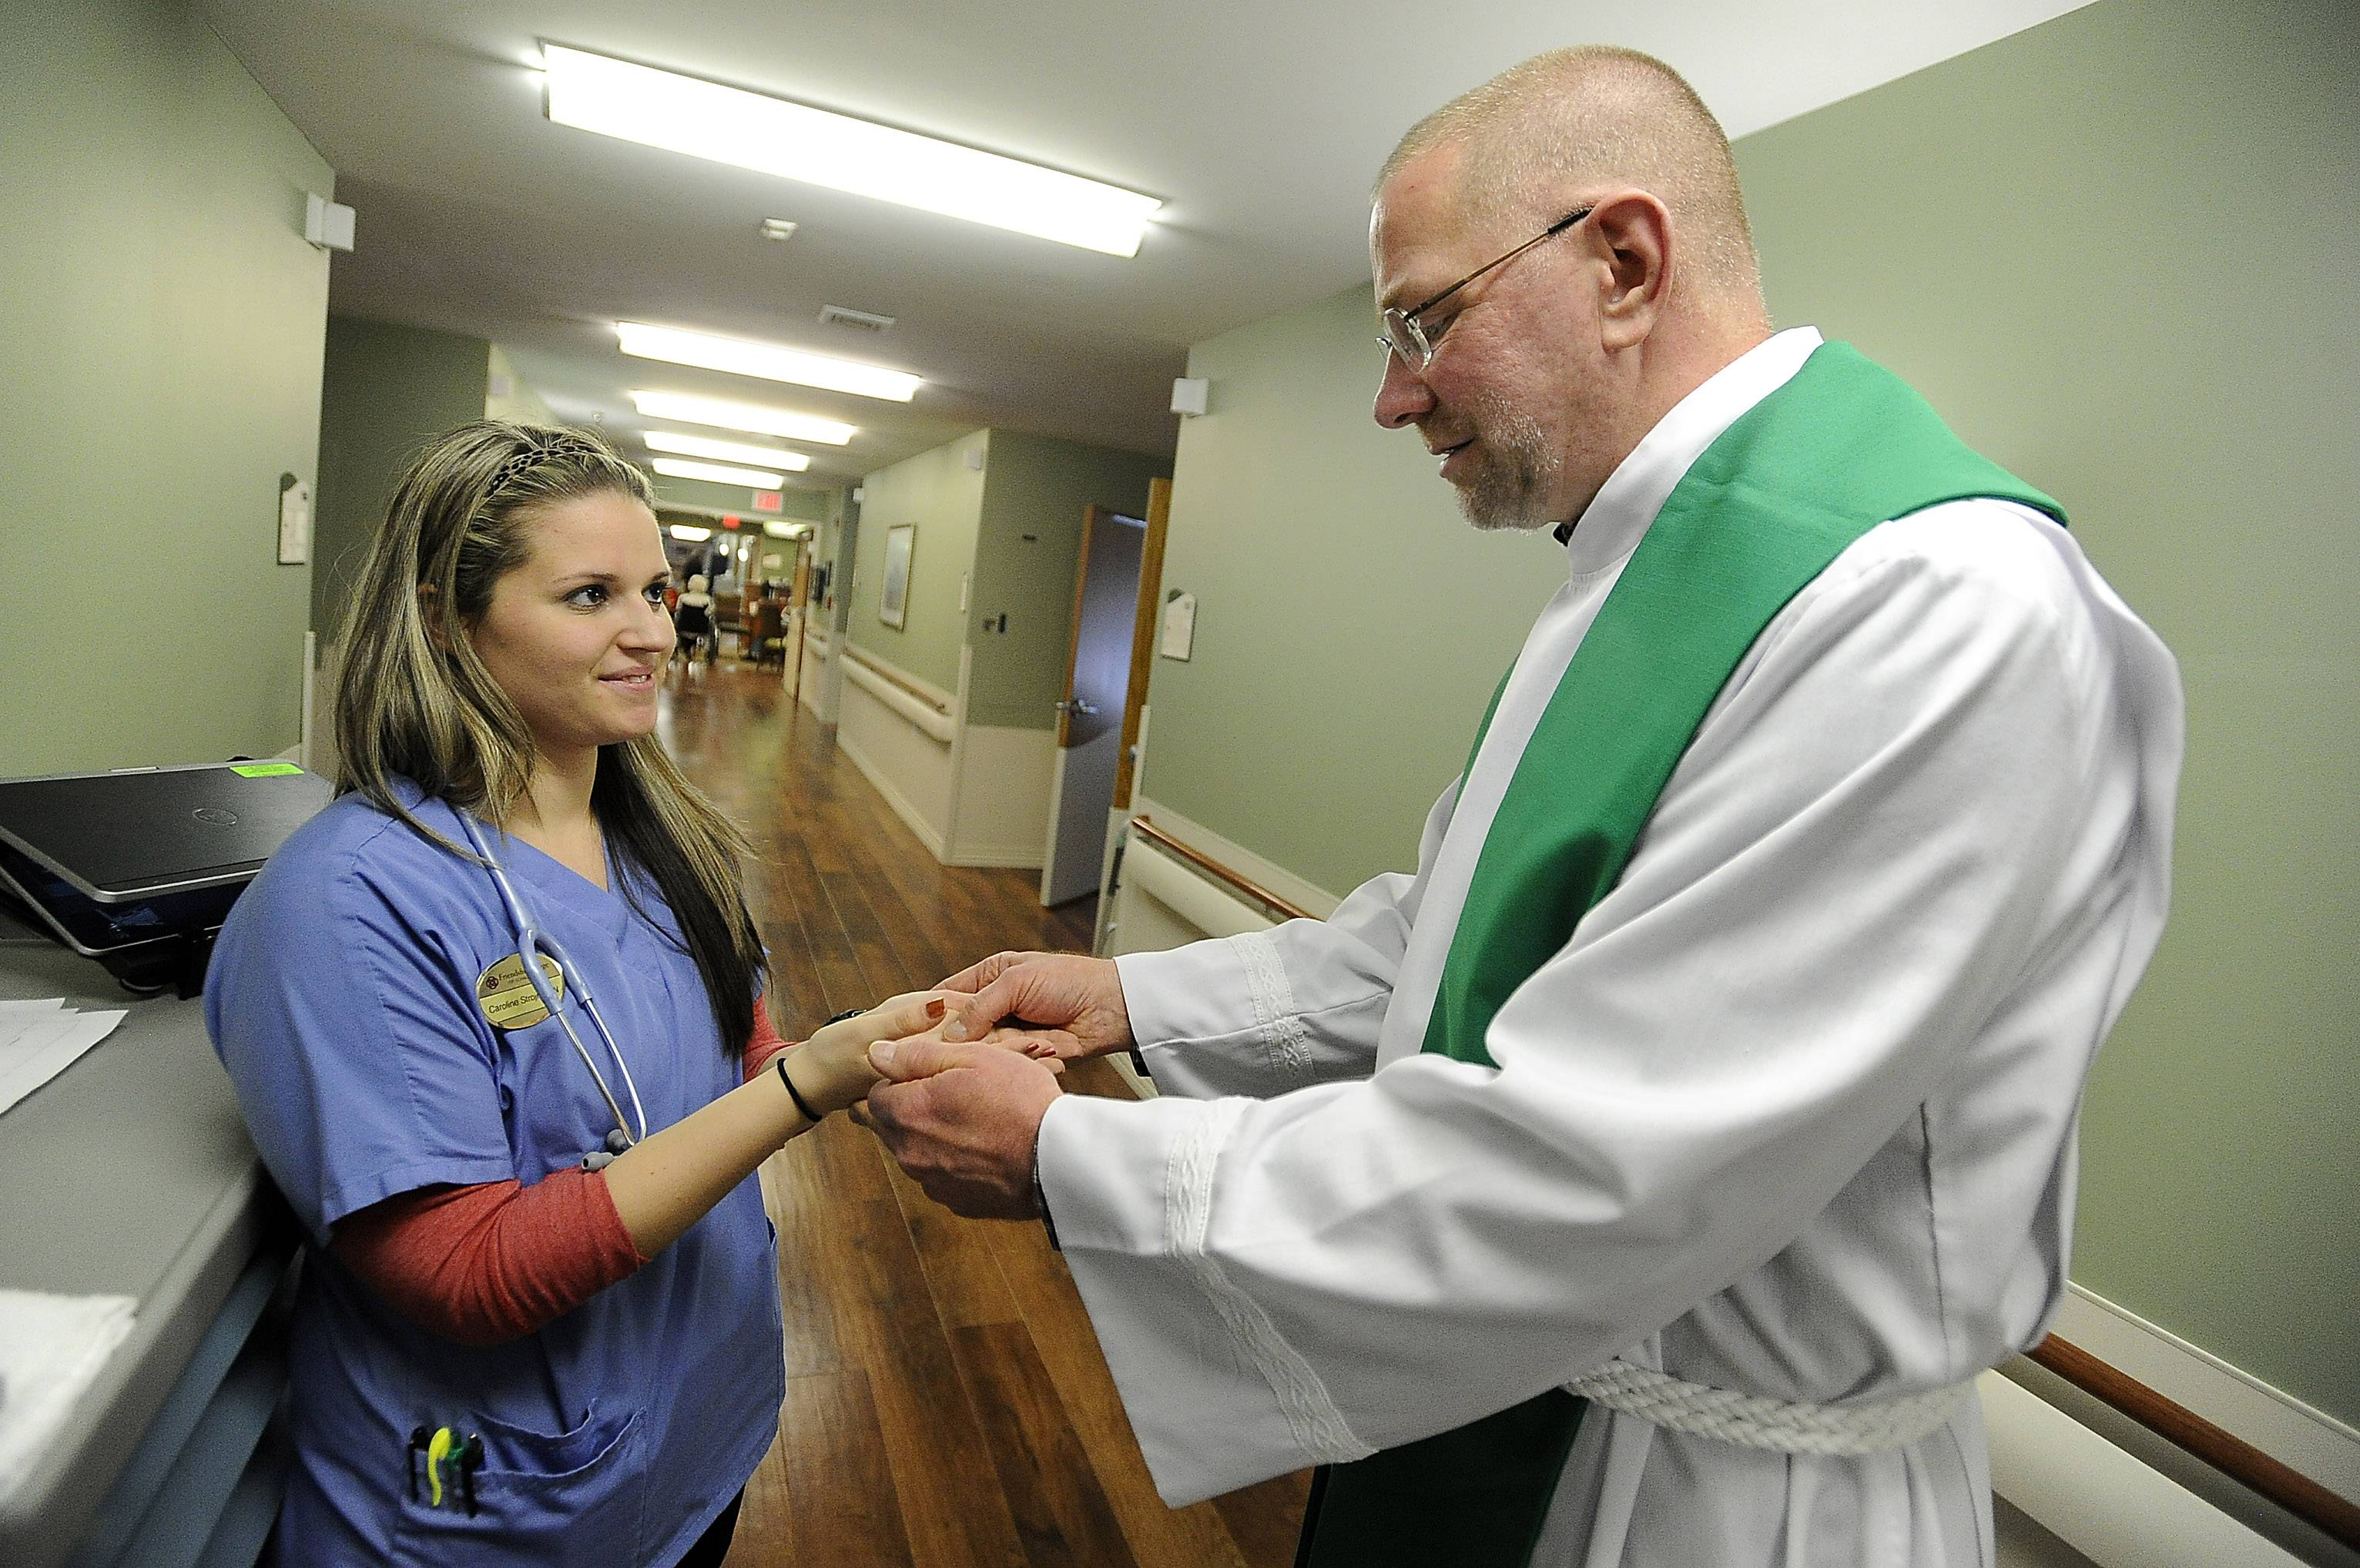 Using sacred anointing oil on the hands of staff nurse Caroline Strojny of Schaumburg, Kafader reprises the presence of God in her life. He says this blessing allows staff members to do good work.